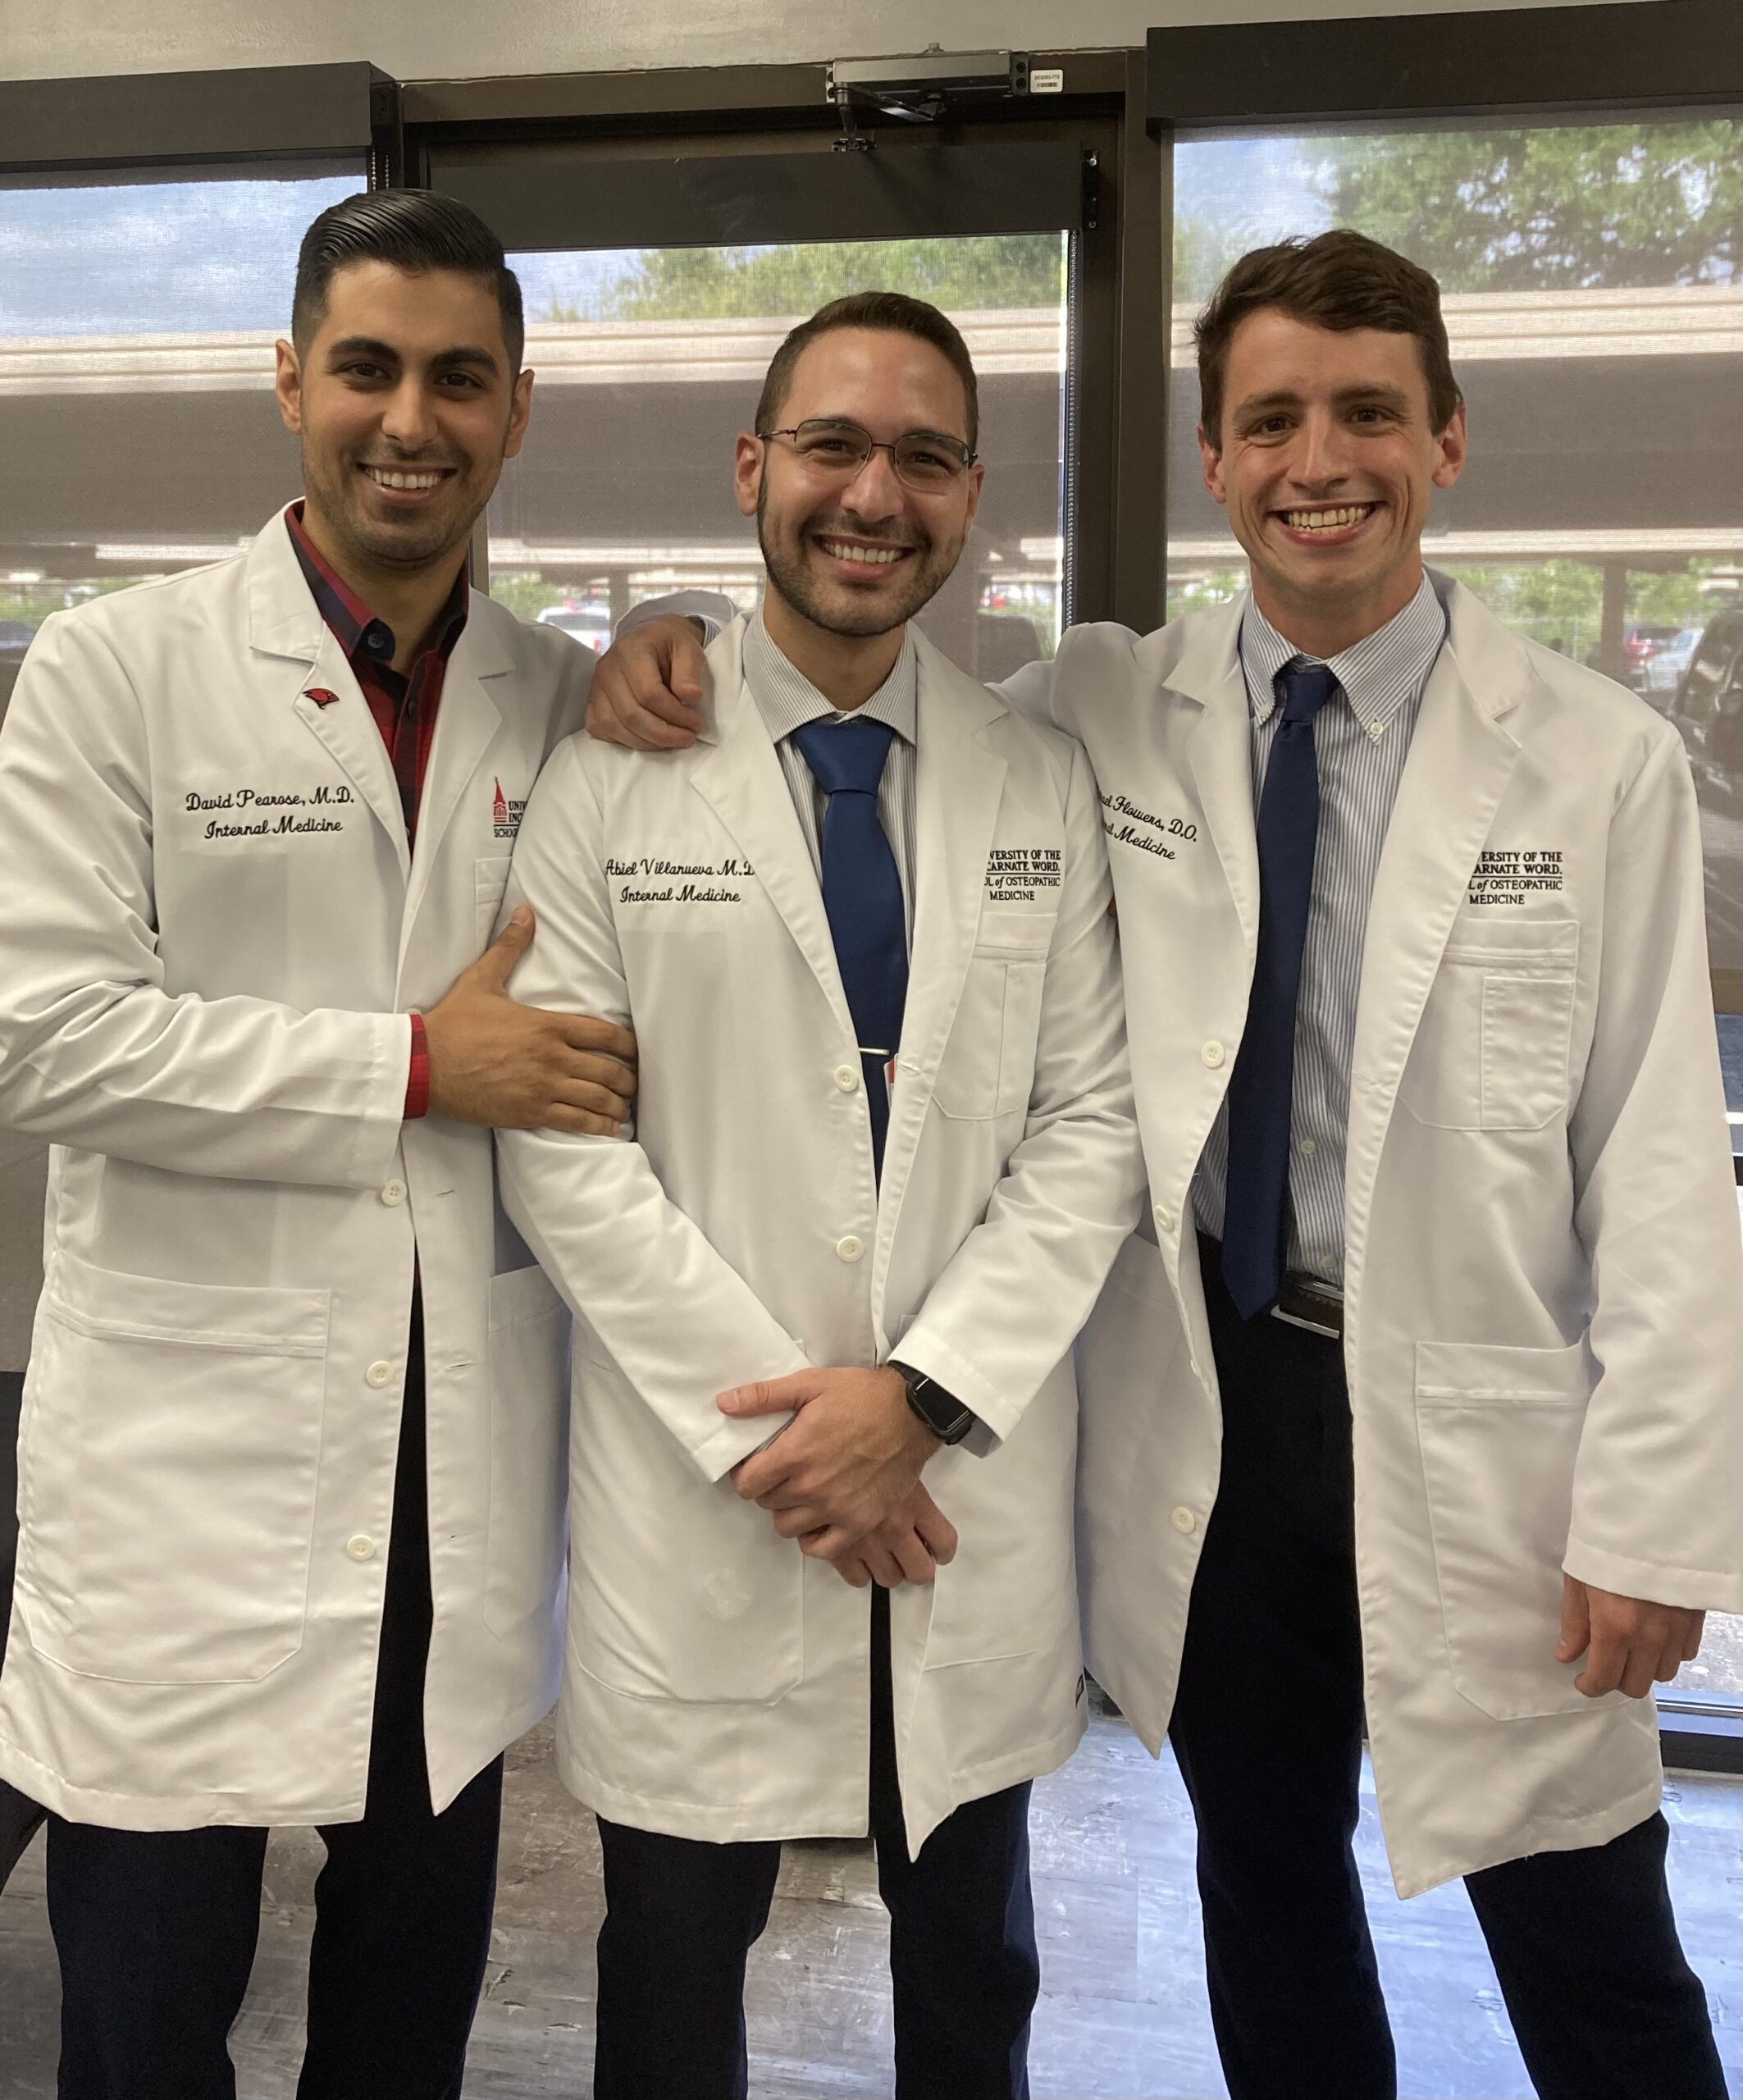 Male doctors from the Texas Vista Medical Center